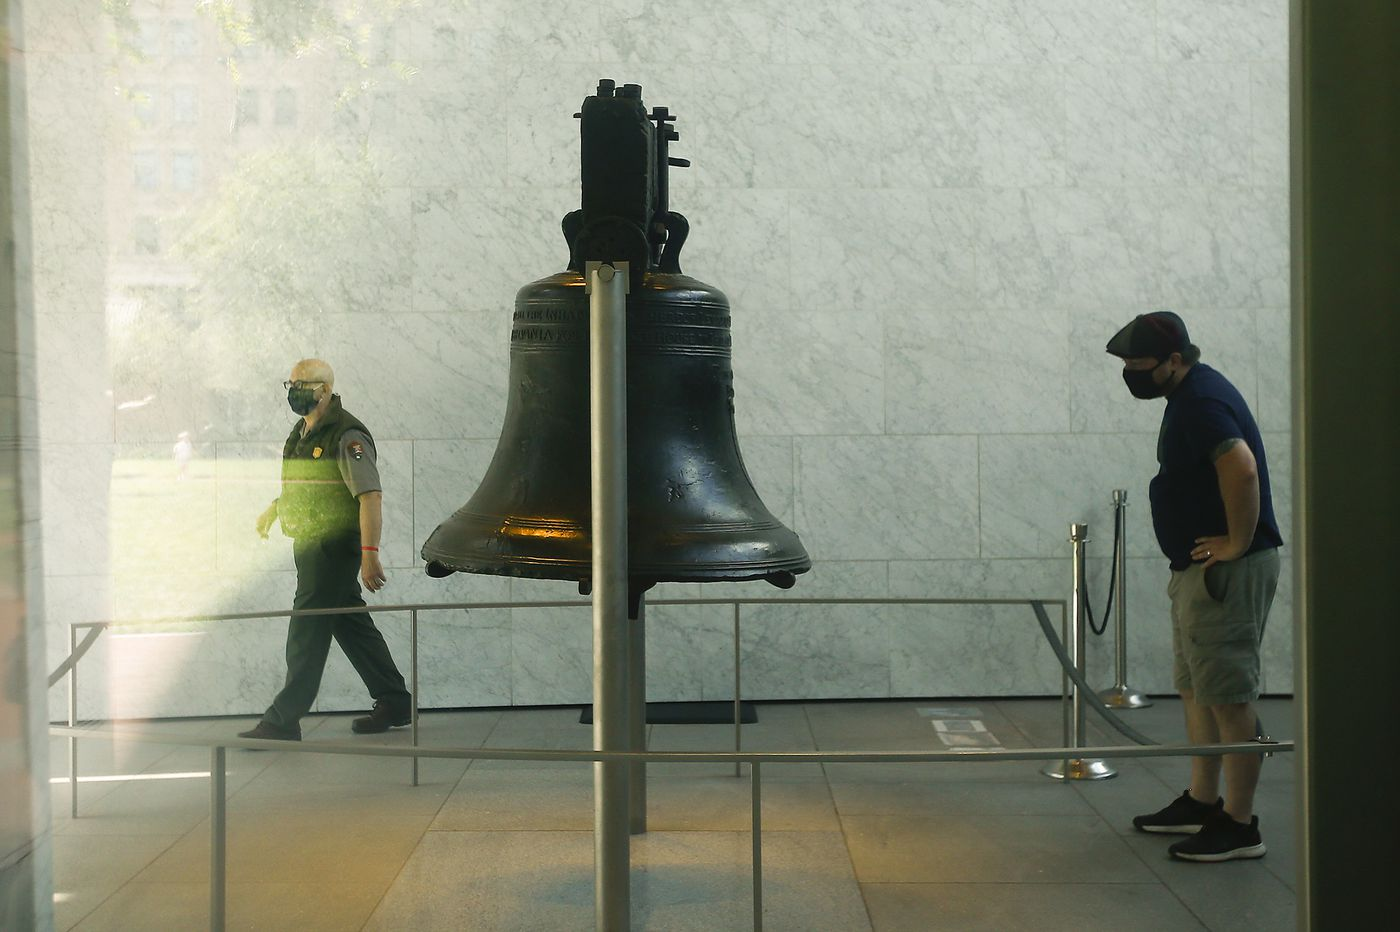 Are masks required at the Liberty Bell? 'It's a gray area.'